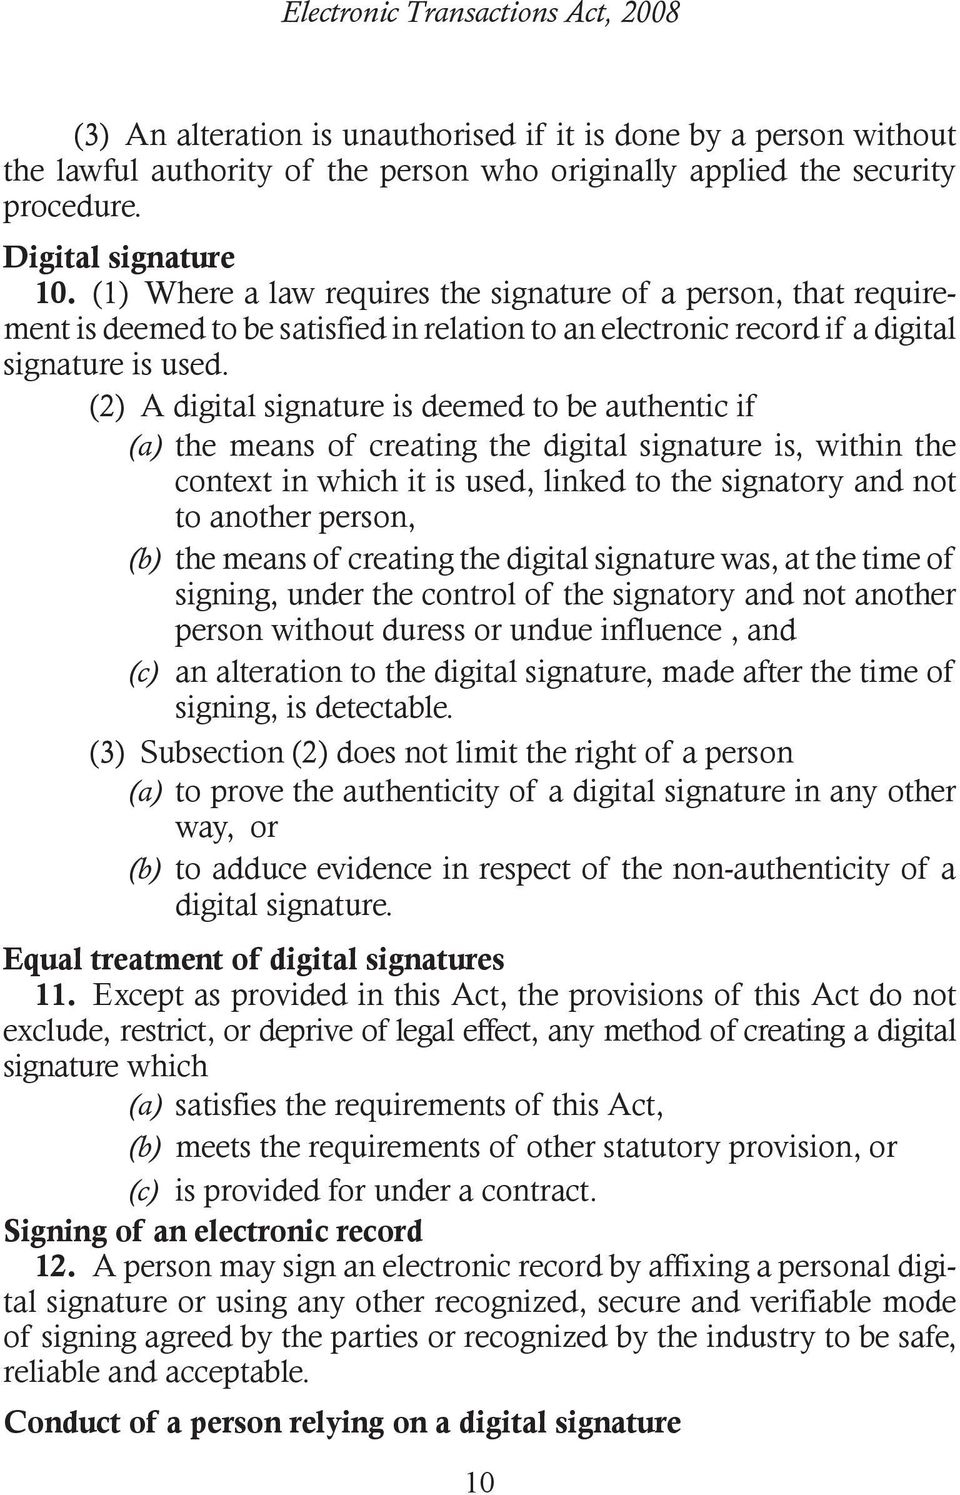 (2) A digital signature is deemed to be authentic if (a) the means of creating the digital signature is, within the context in which it is used, linked to the signatory and not to another person, (b)